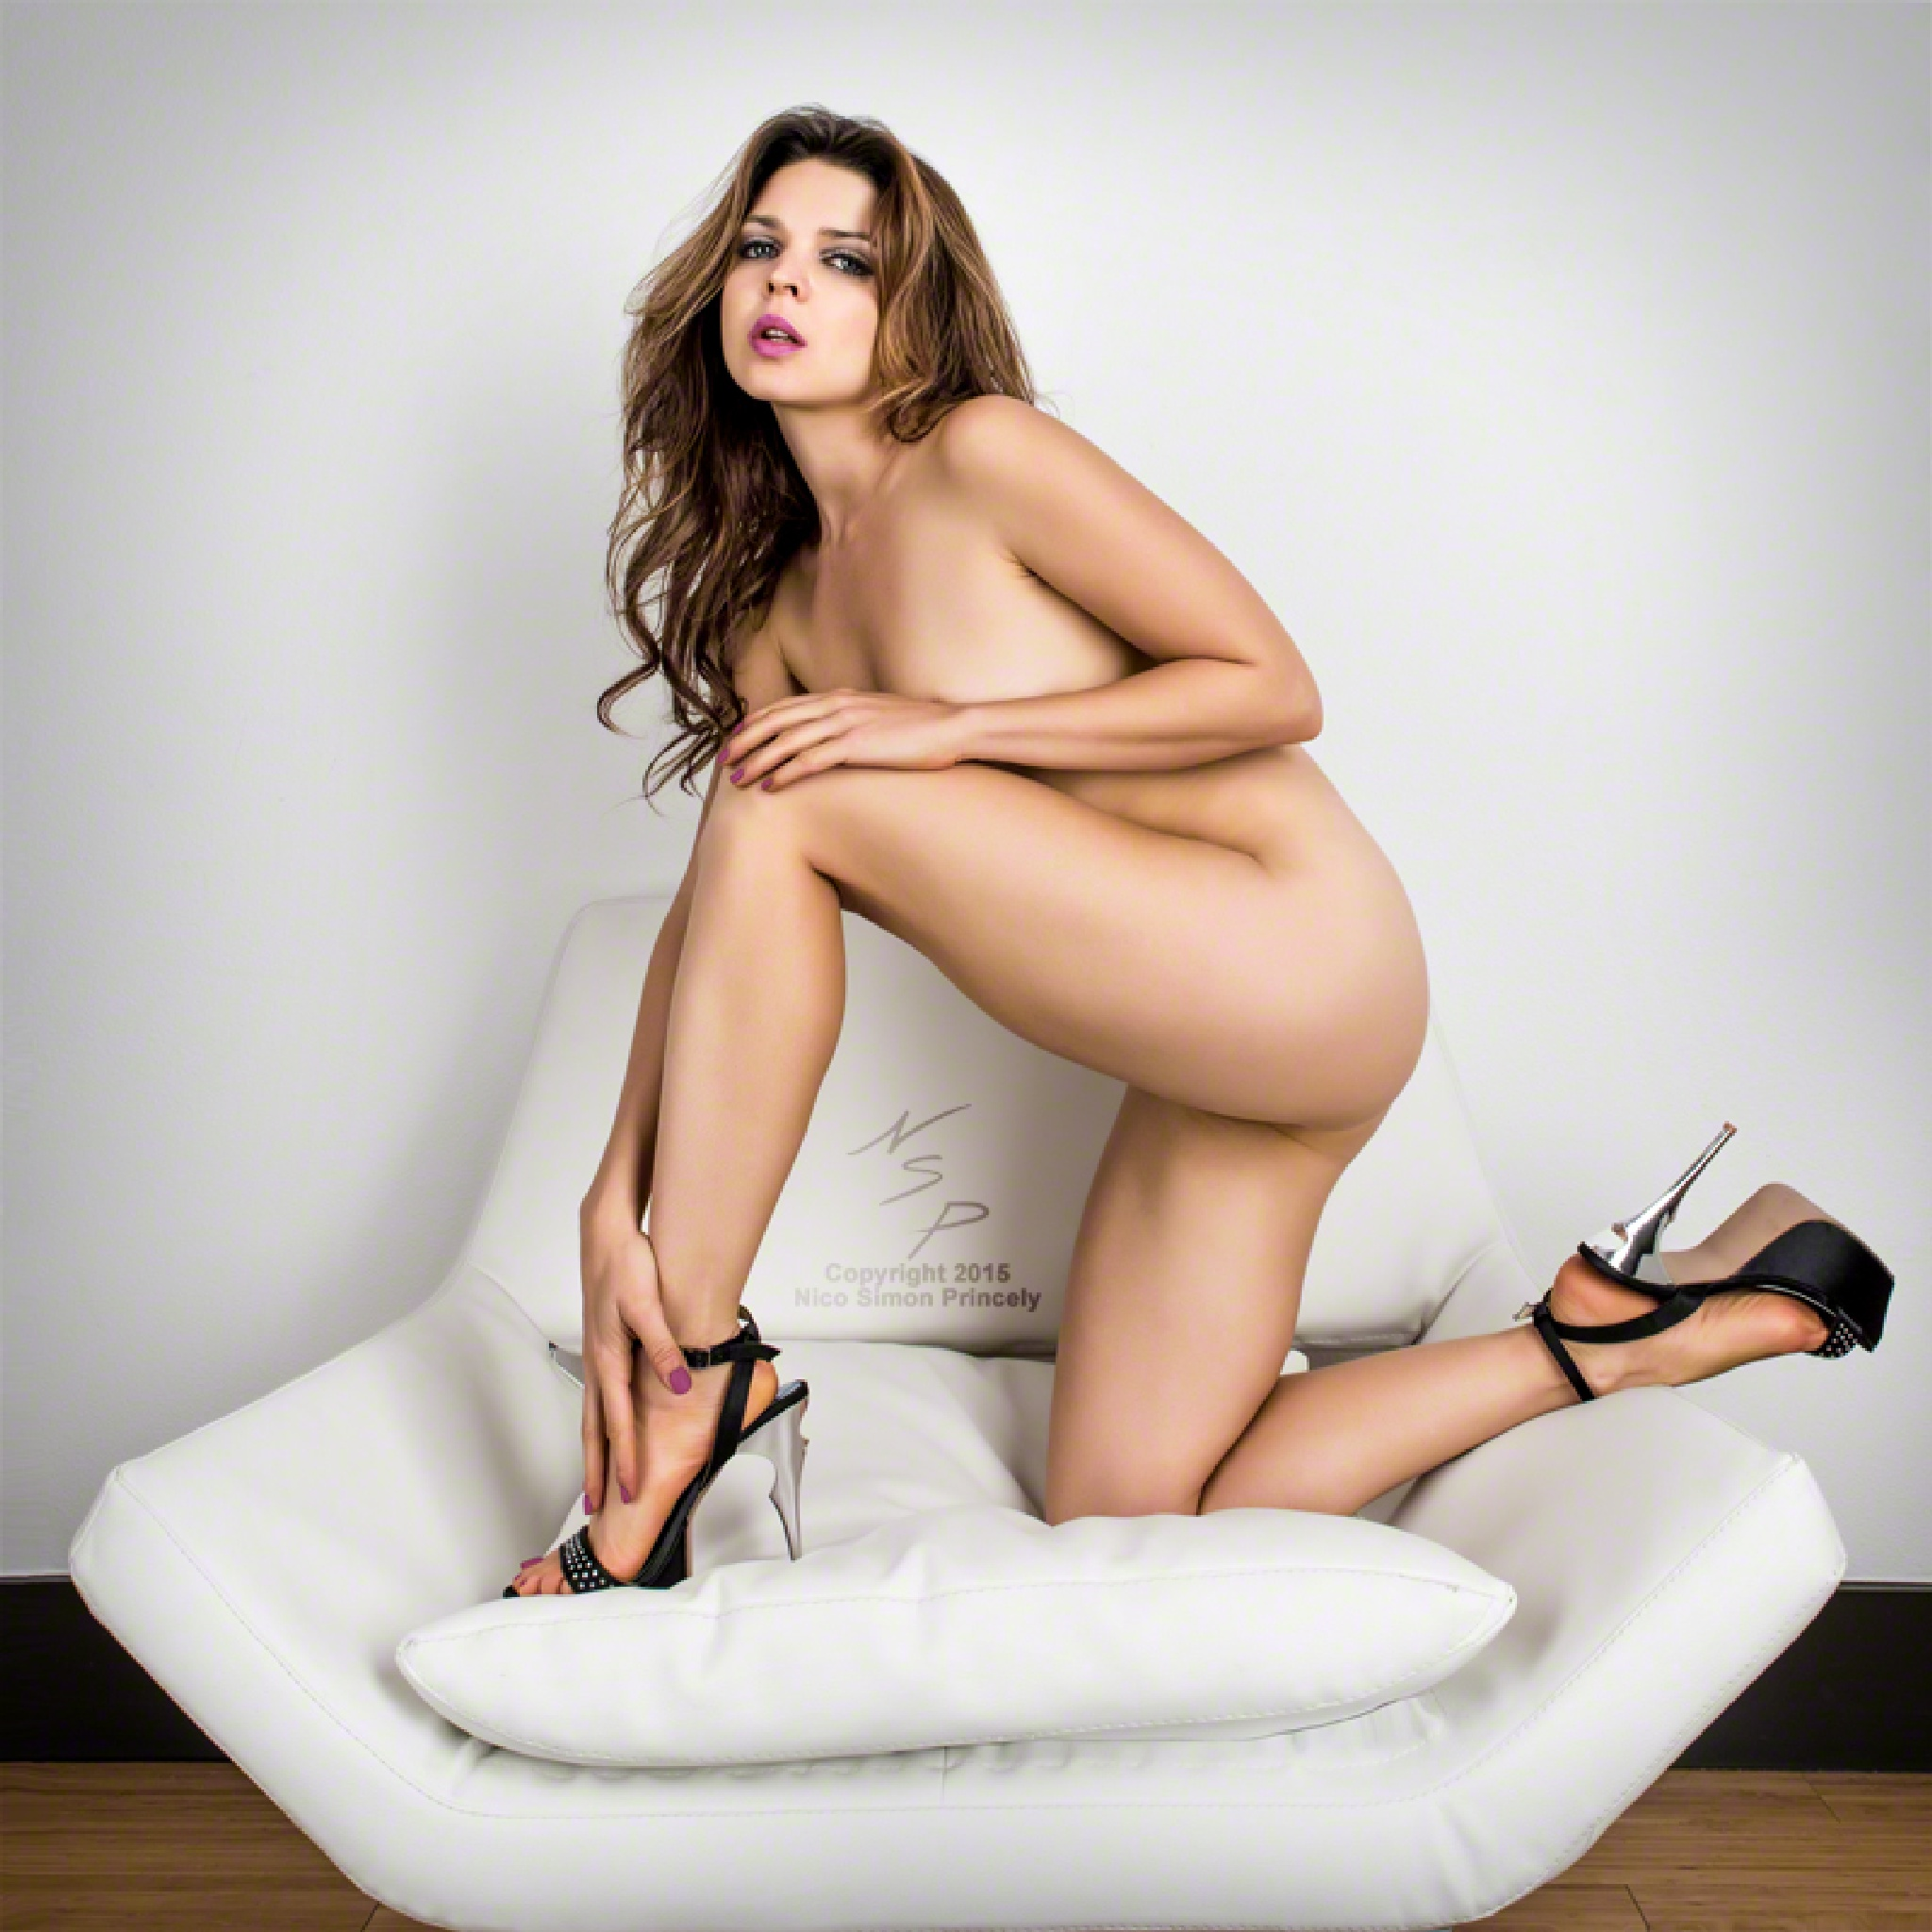 """""""On The Chair"""" - Kristy Jessica by Nico Simon Princely"""